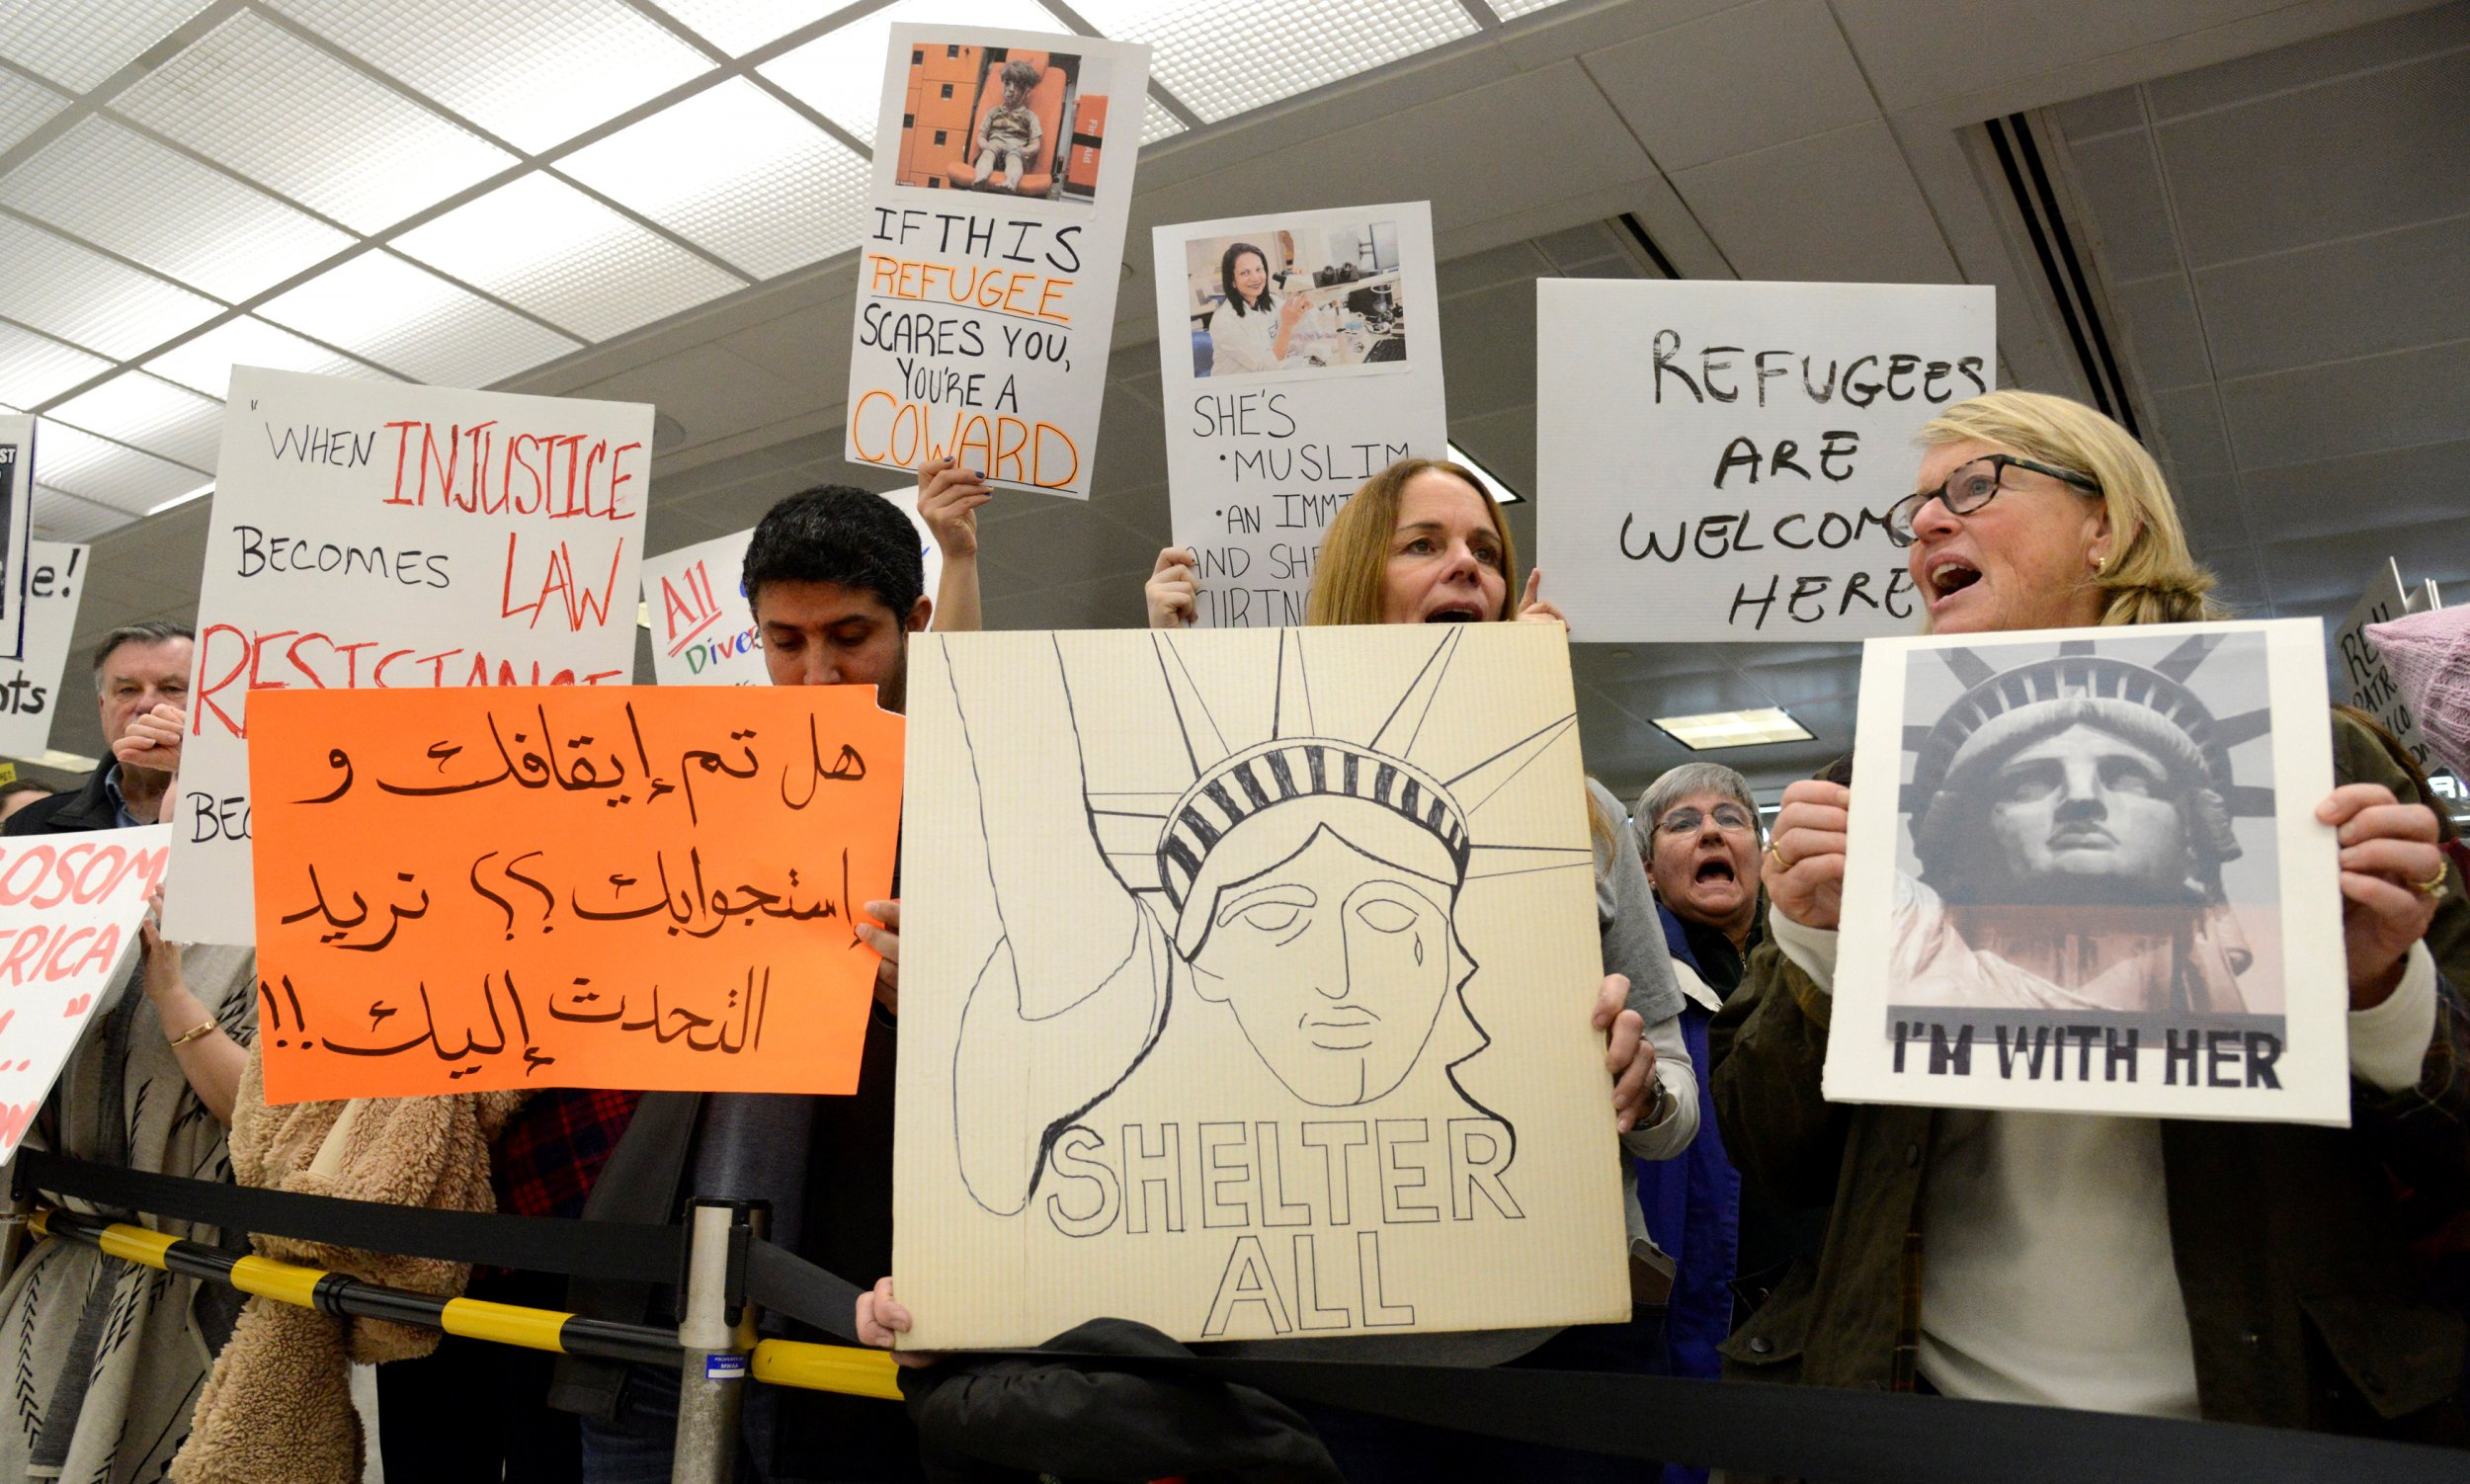 Dulles airport protest